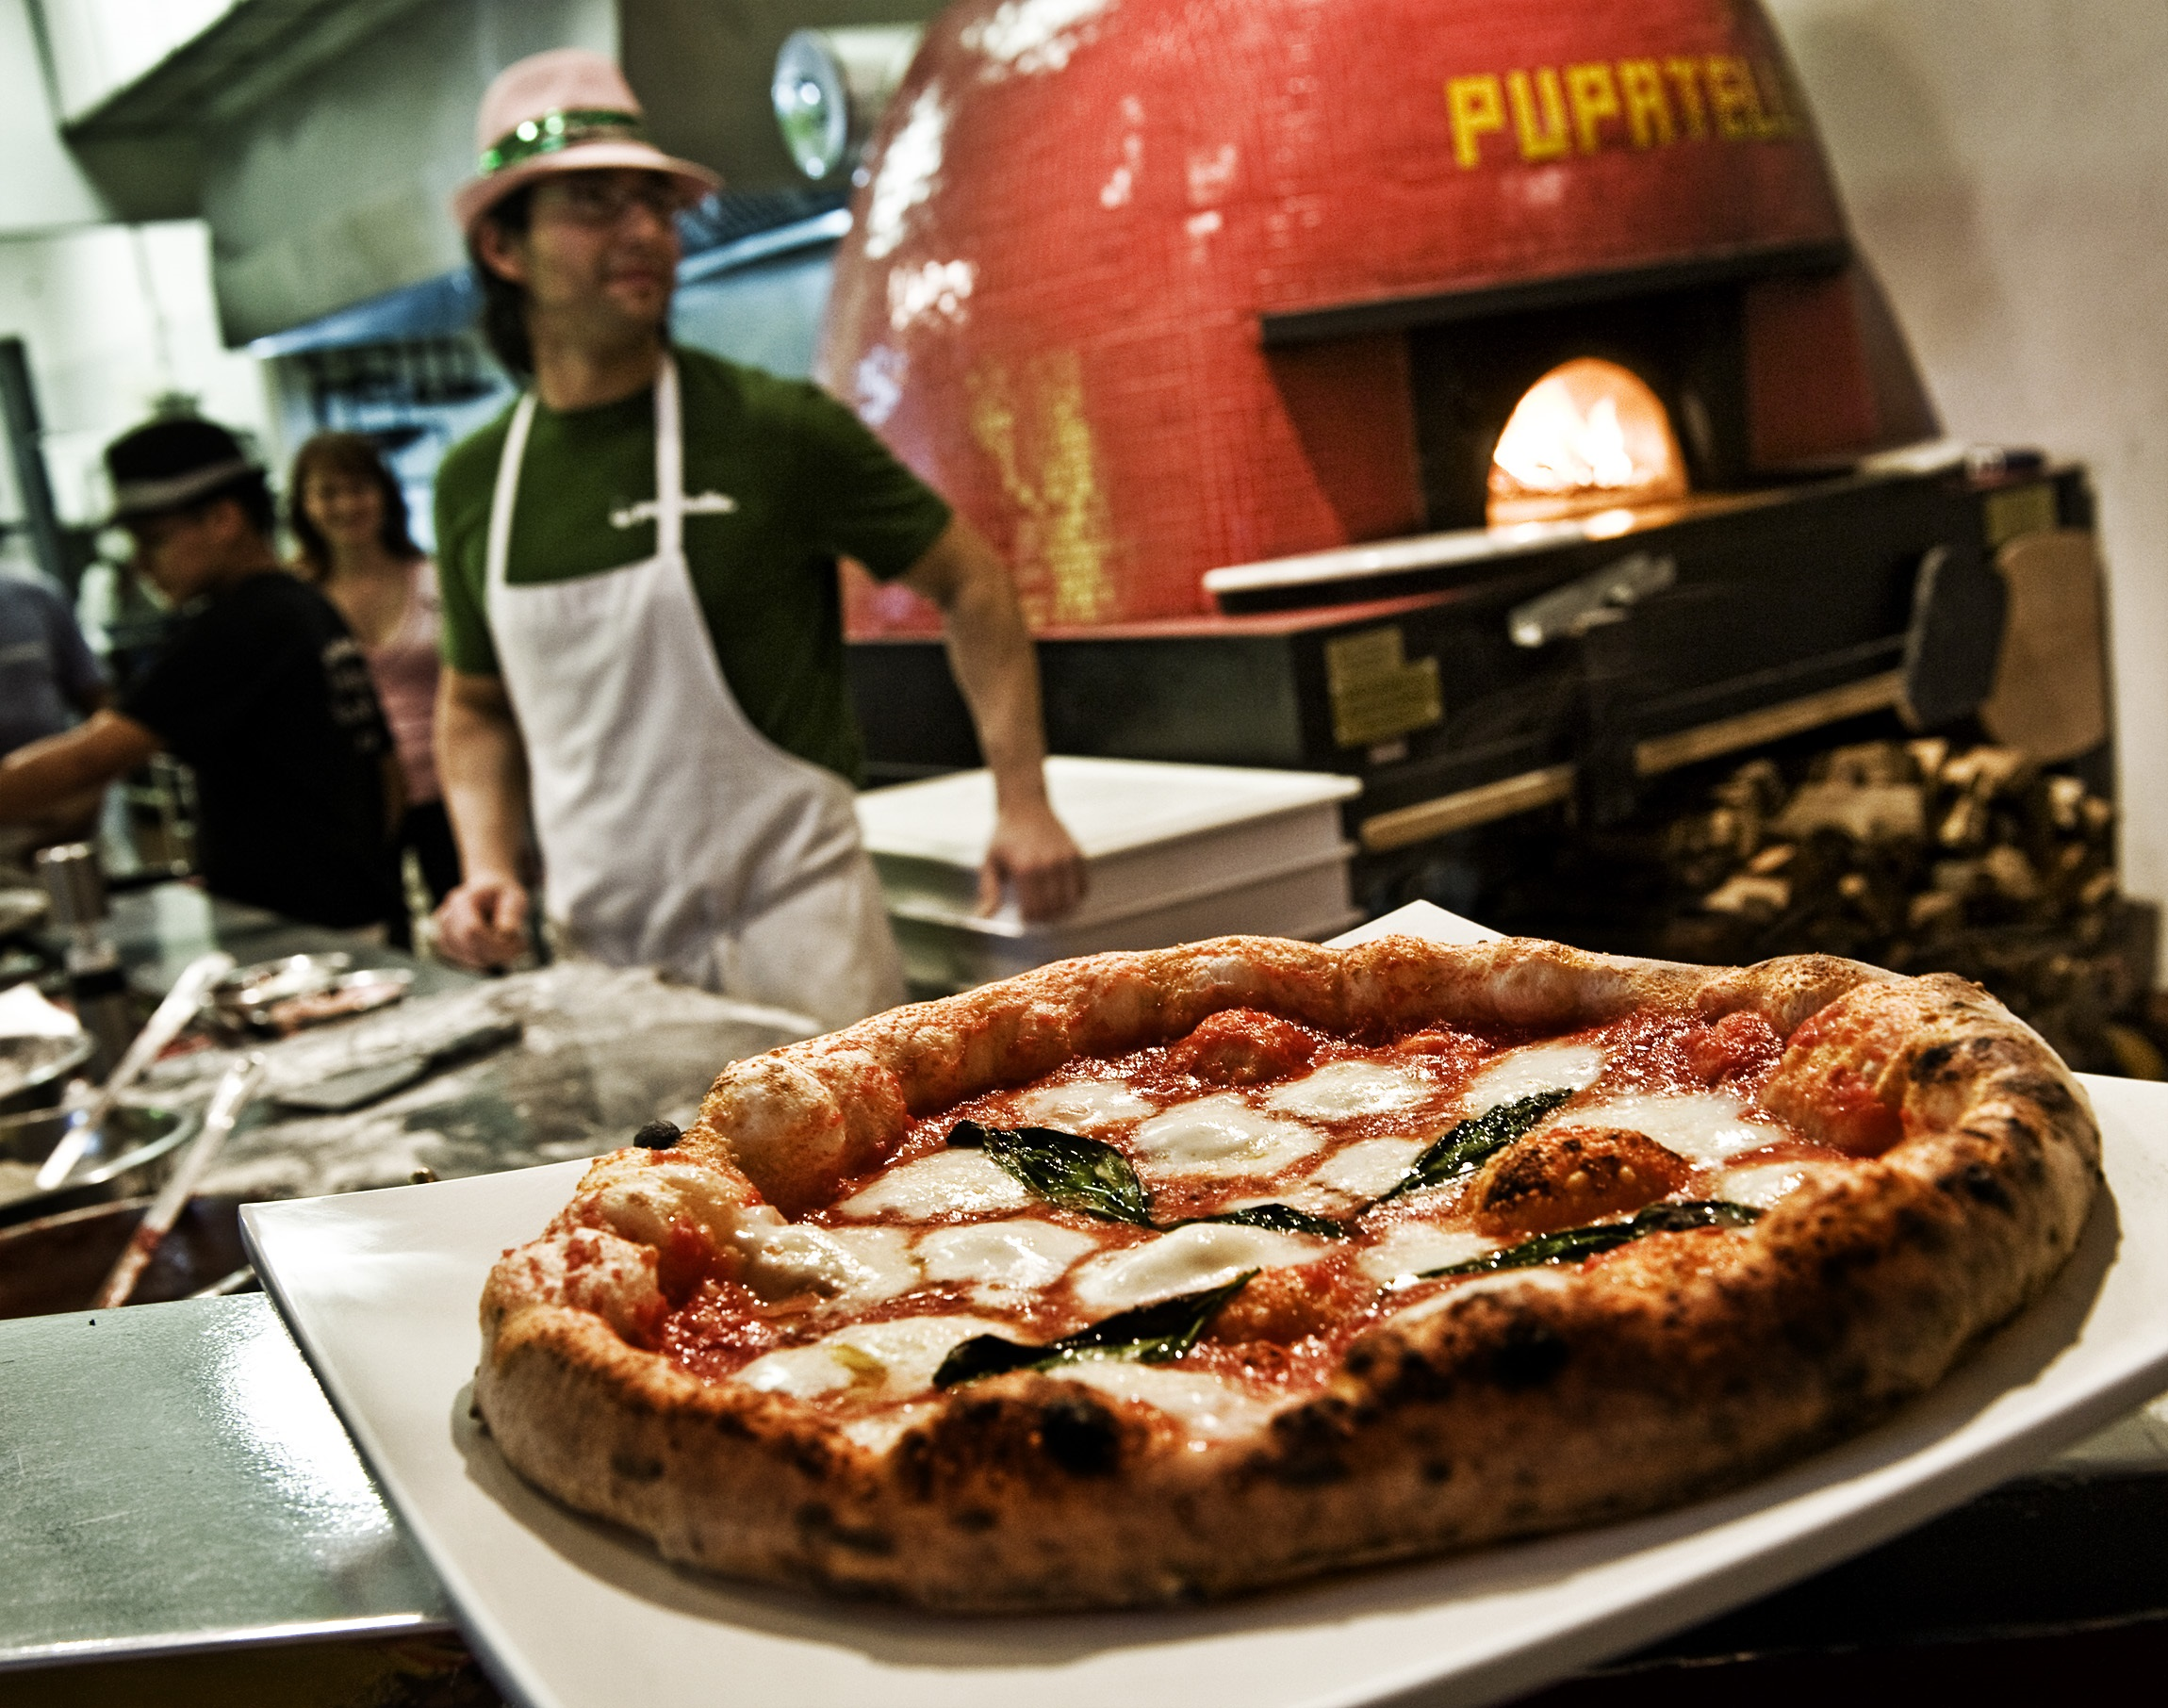 A Margherita pizza from Pupatella is displayed on a white plate in front of the wood-burning oven